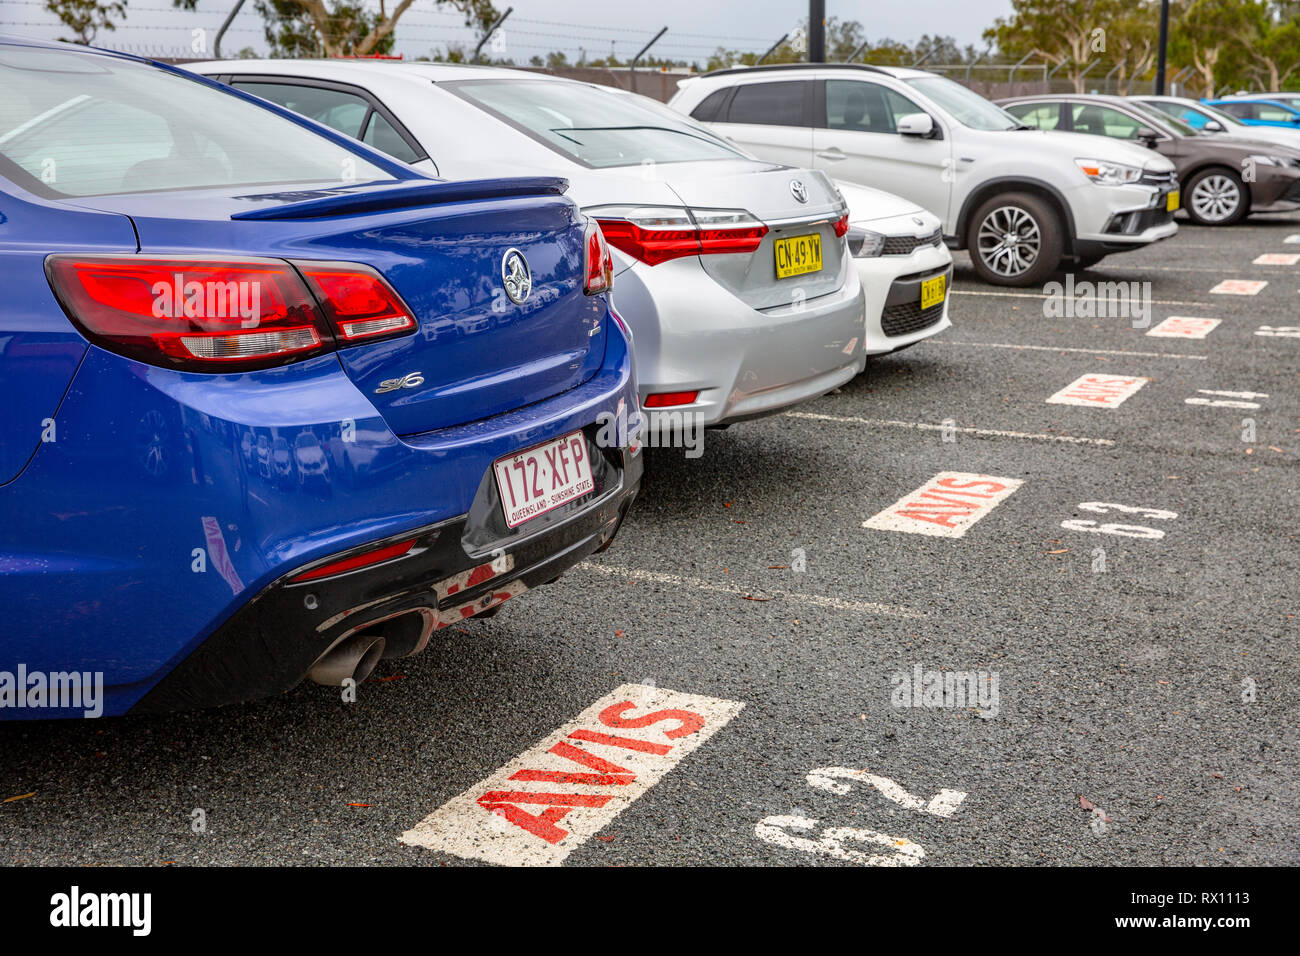 Avis hire cars at Port macquarie airport including a blue Holden commodore sv6, New South Wales,Australia - Stock Image